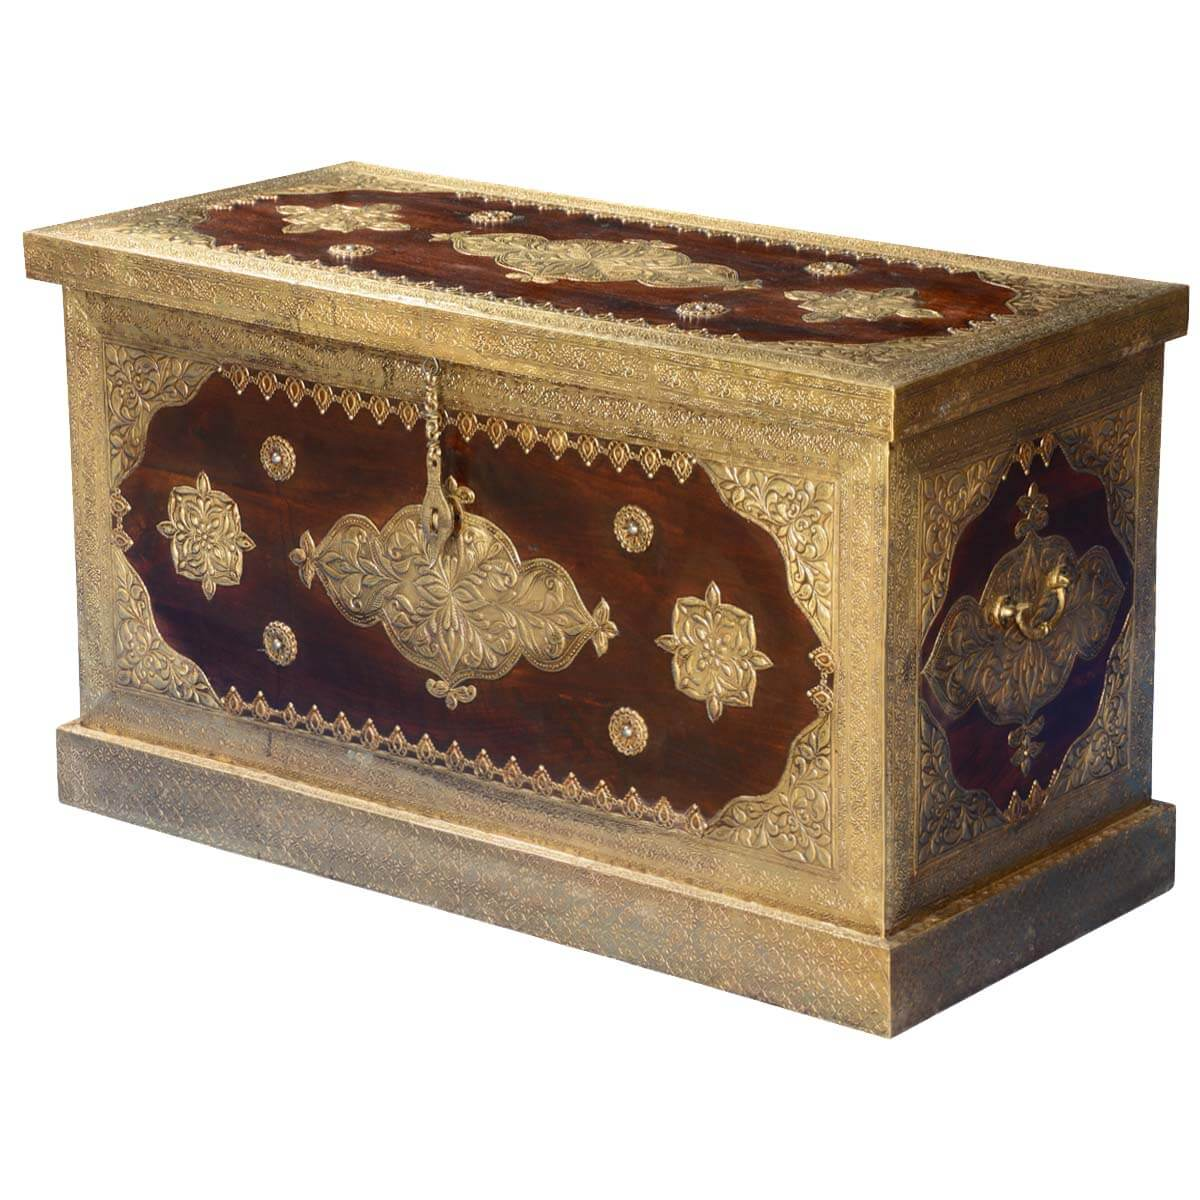 Golden Blossoms Mango Wood & Brass Inlay Coffee Table Chest